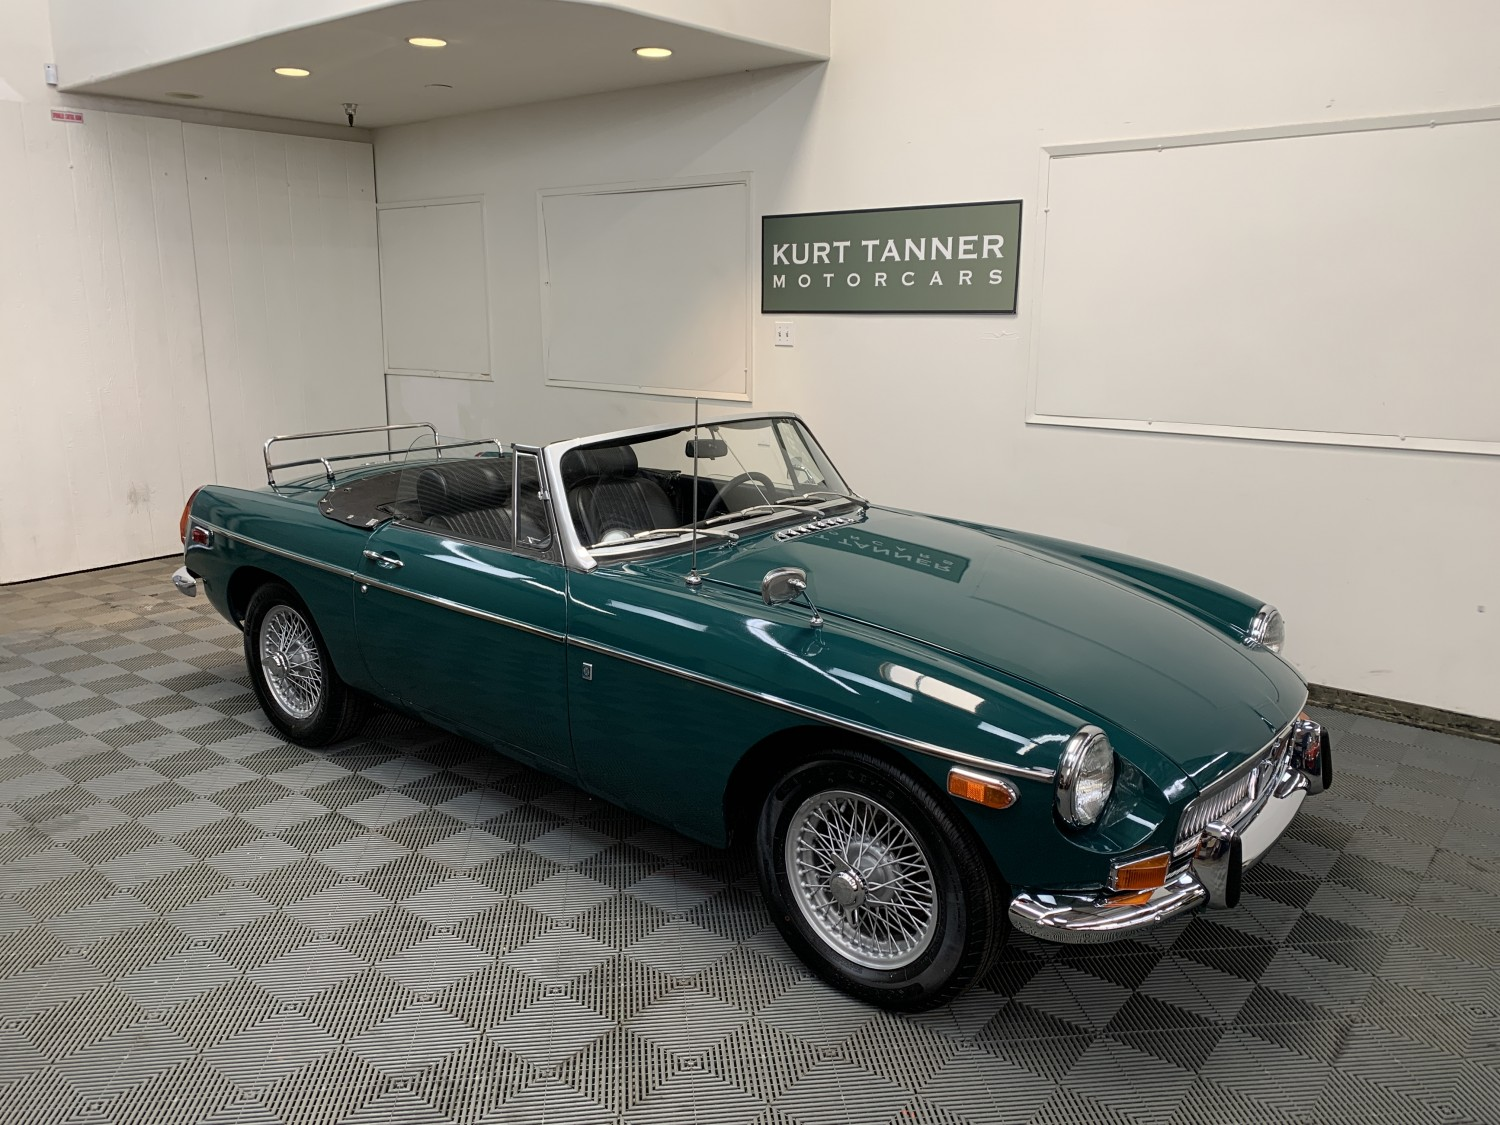 1970 MGB ROADSTER. BRITISH RACING GREEN WITH BLACK INTERIOR, TOP, TOP BOOT, TONNEAU COVER. 4-SPEED, WIRE WHEELS, CHROME LUGGAGE RACK. EXCEPTIONAL 3-OWNER CAR WITH 60,308 ORIGINAL MILES. WELL PRESERVED, GREAT DRIVING CAR. FIRST OWNER BELIEVED TO BE CAROLINE LEE BOUVIER.